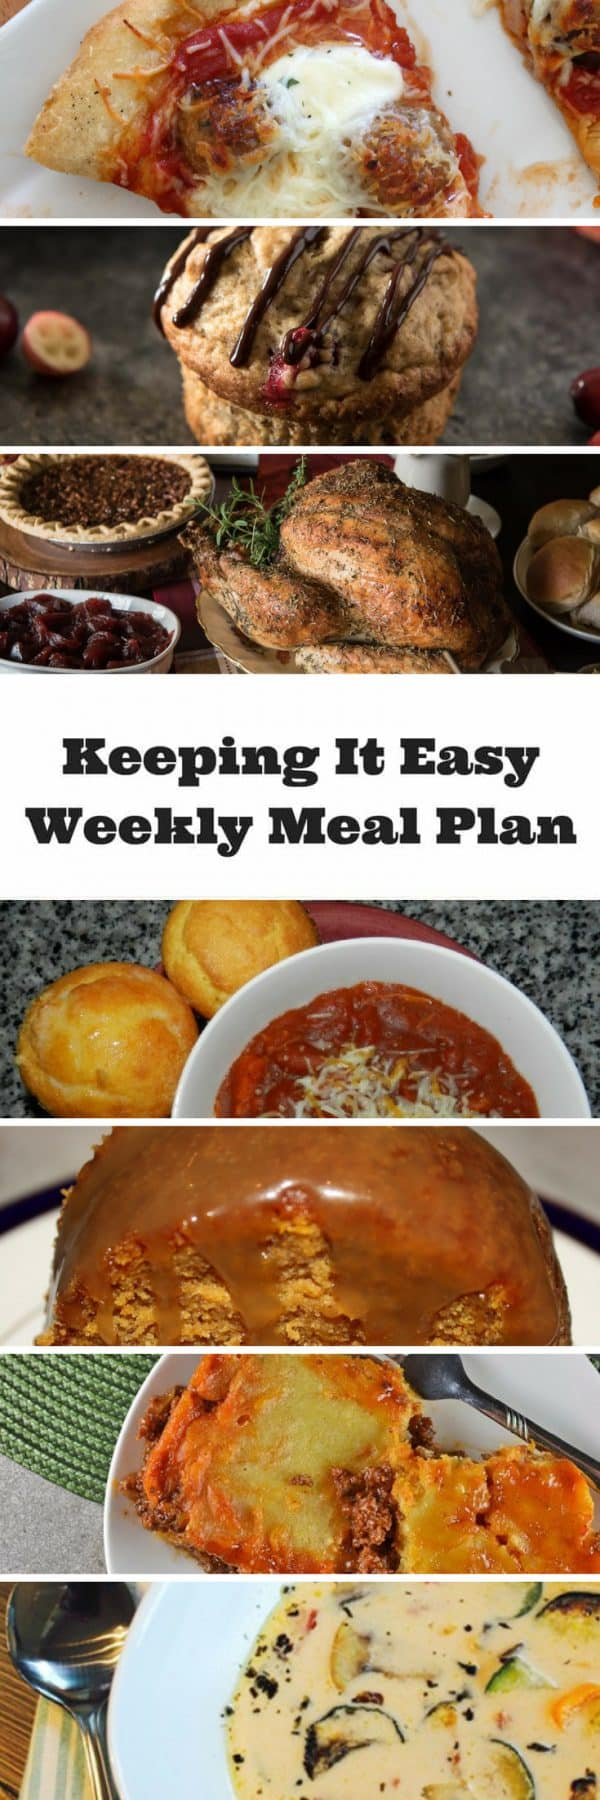 Easy Weekly Meal Plan #46 from My Fearless Kitchen. This week's meal plan includesBanana Cranberry Pistachio Muffins, Easy Roasted Vegetable Soup, Cheesy Cornbread Sloppy Joes, Cheesy Meatball Pizza, Juicy White Wine & Herb Roasted Turkey, BBQ Chicken Chili, and Pumpkin Bundt Cake with Caramel Sauce.